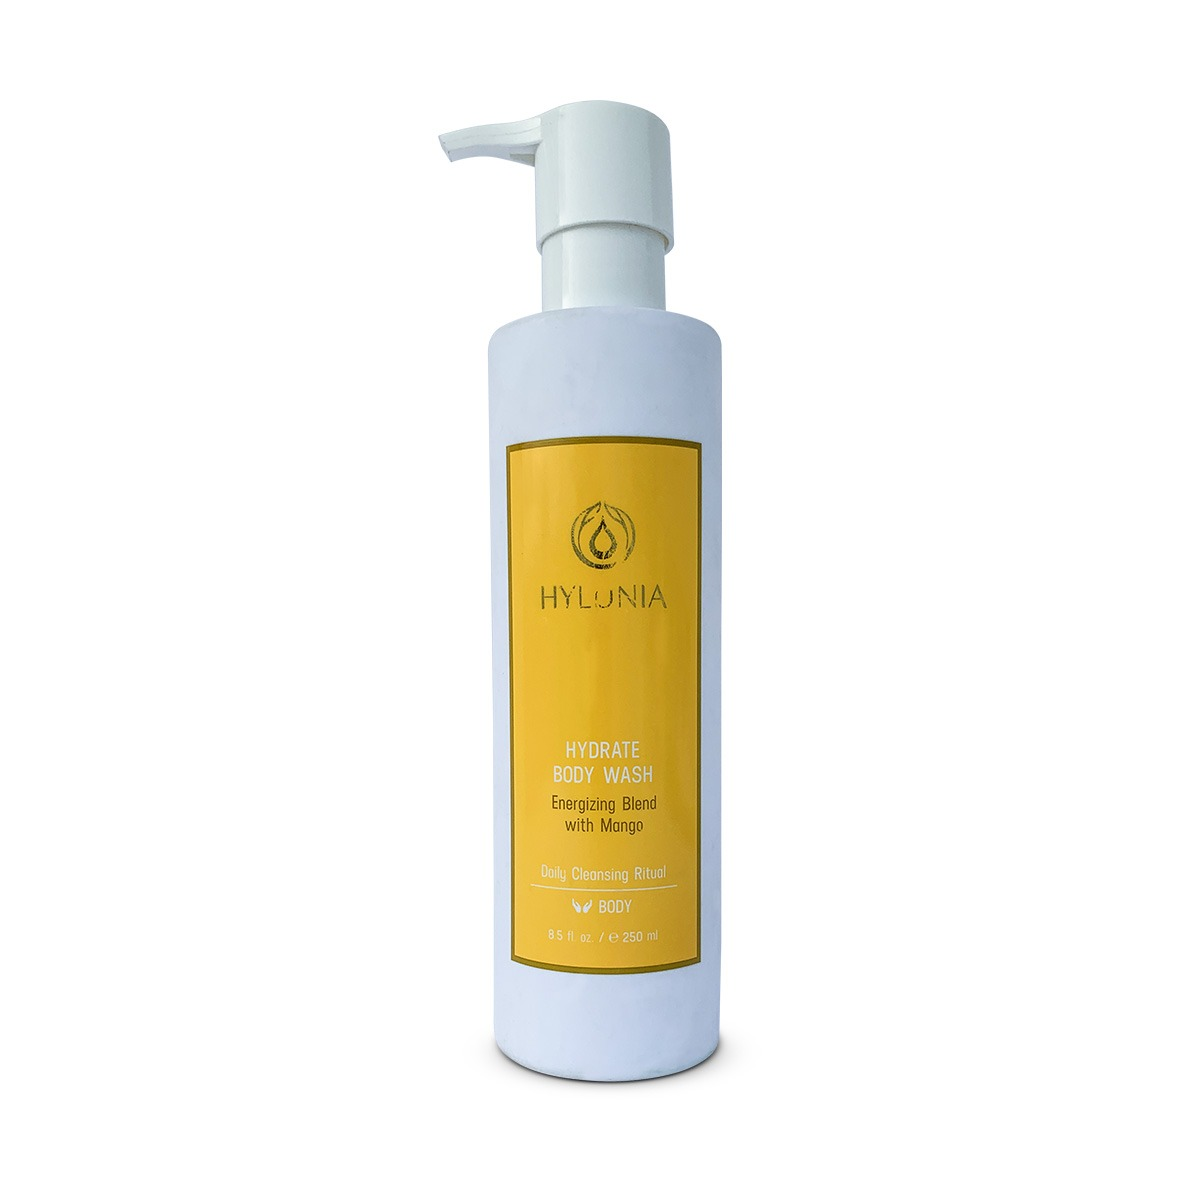 Hydrate Body Wash Energizing Blend with Mango